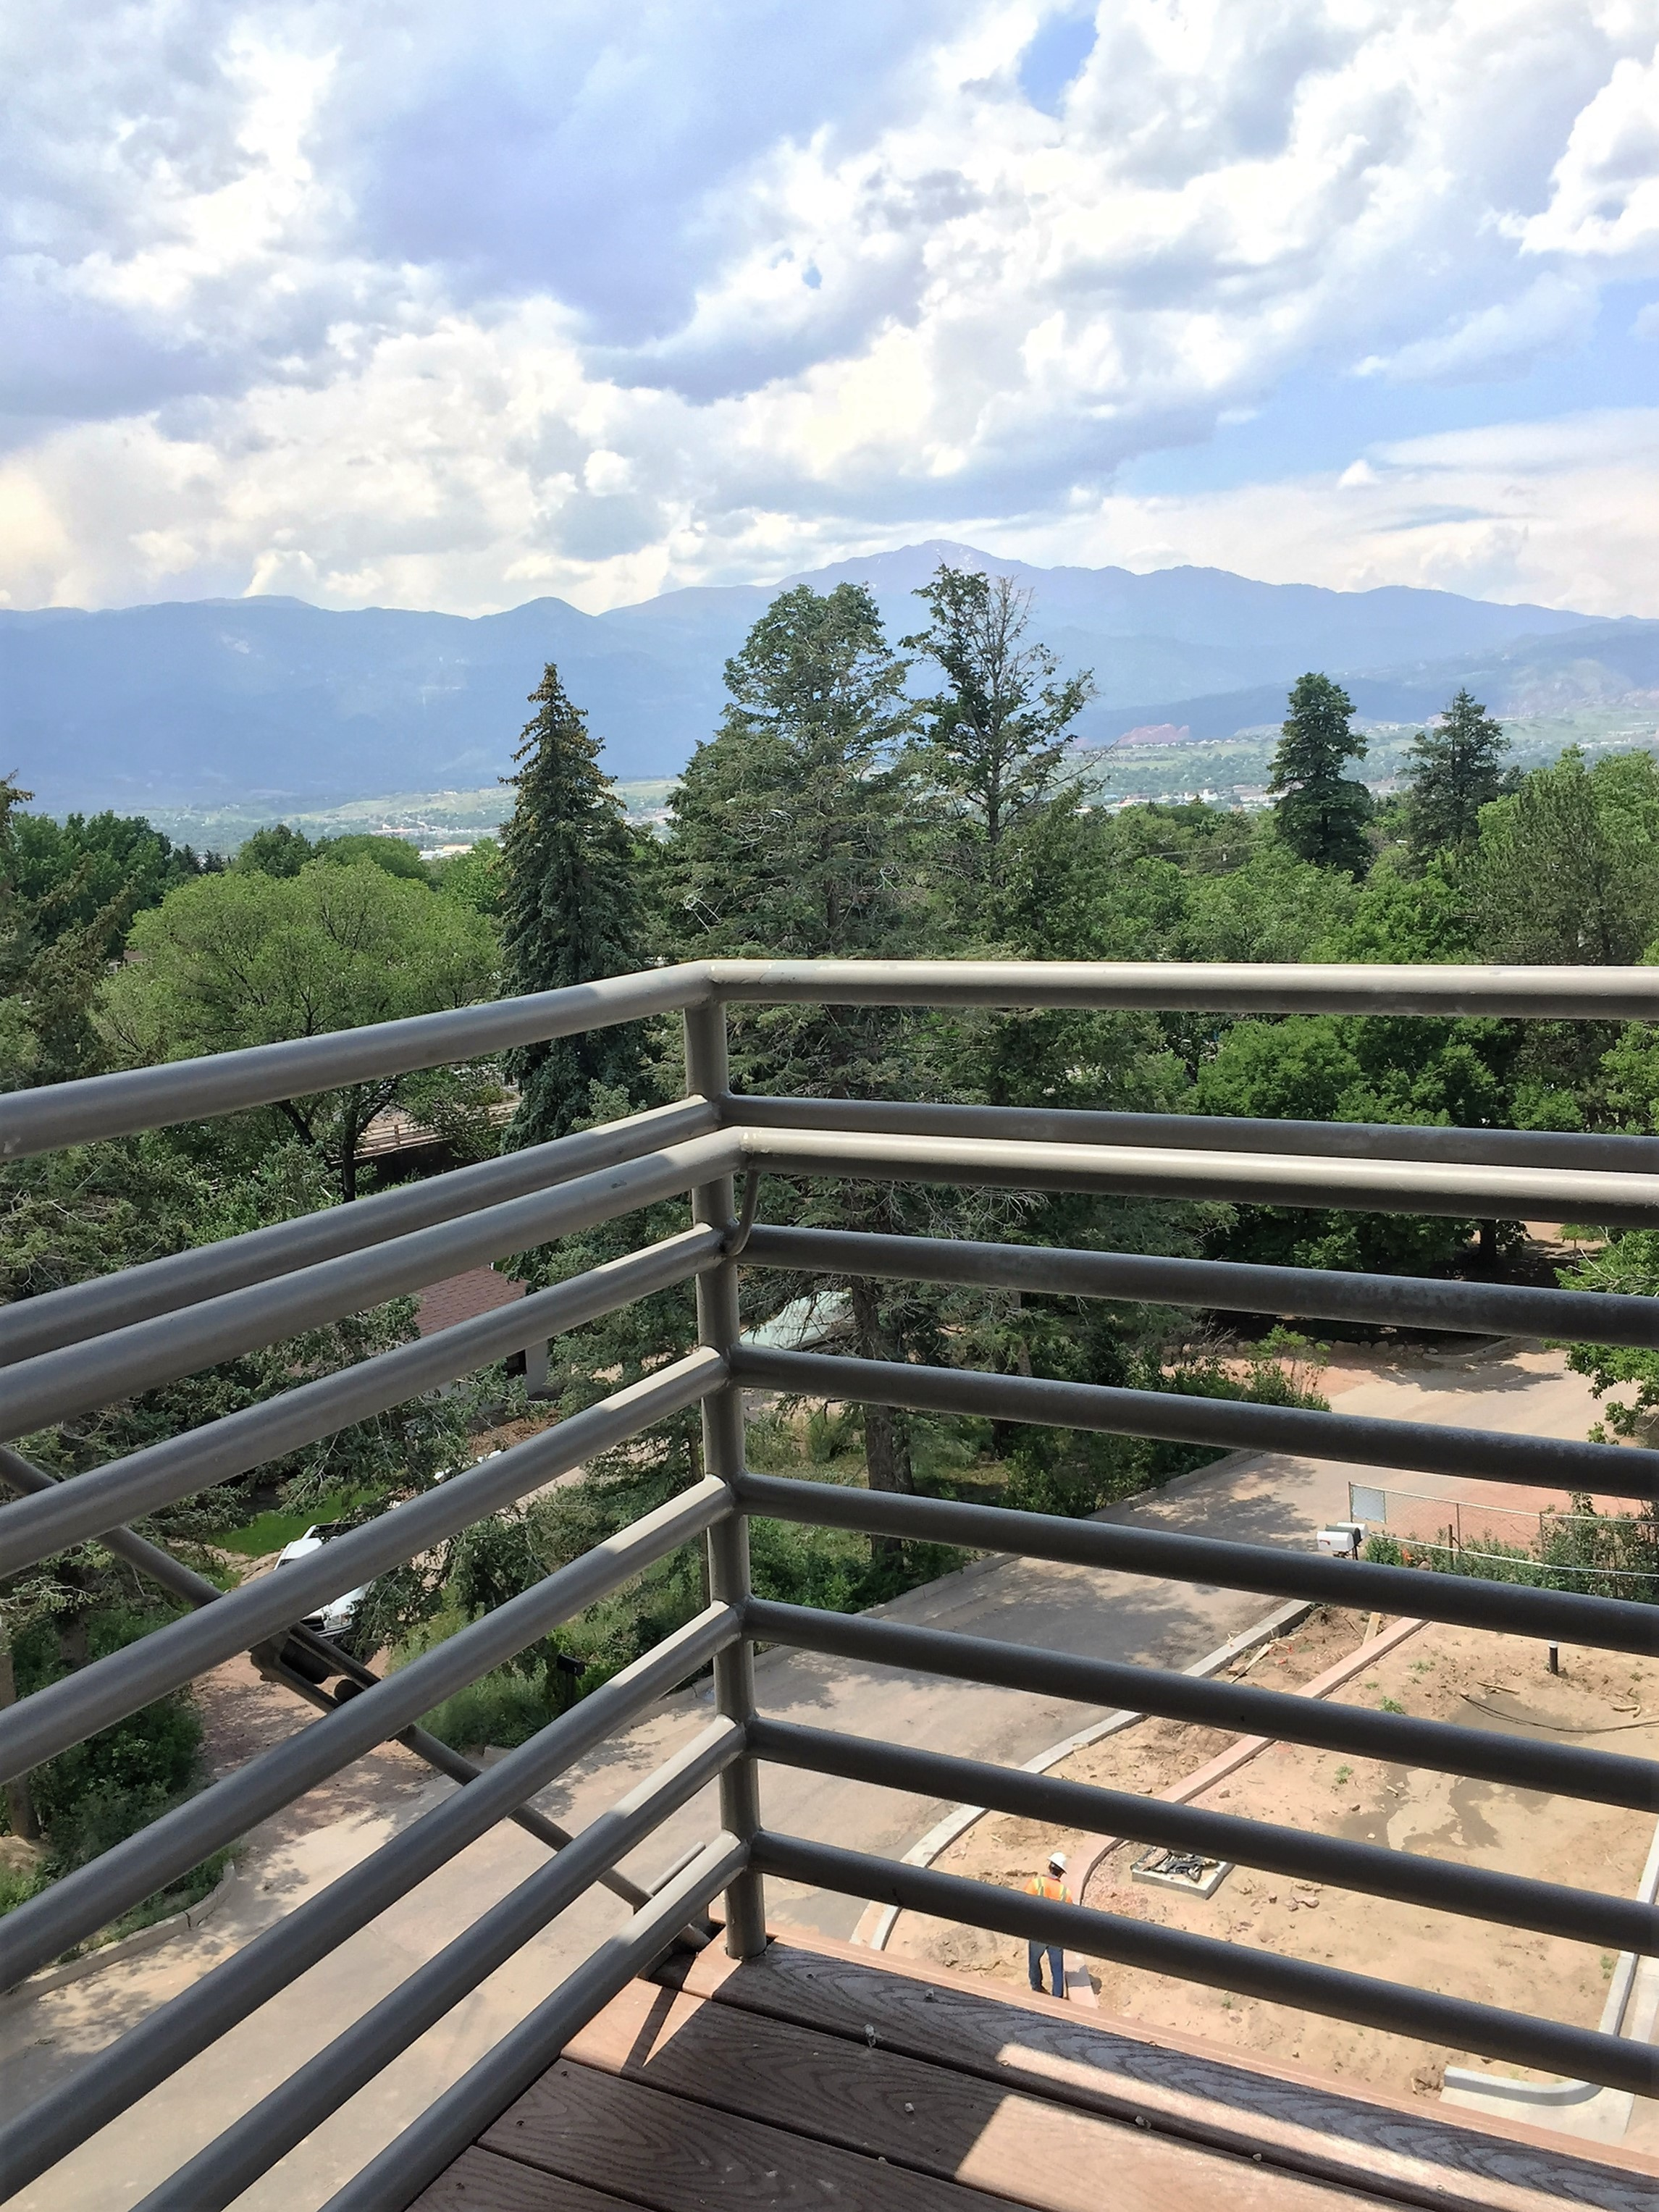 Image of Balconies Available for Lookout on Cragmor